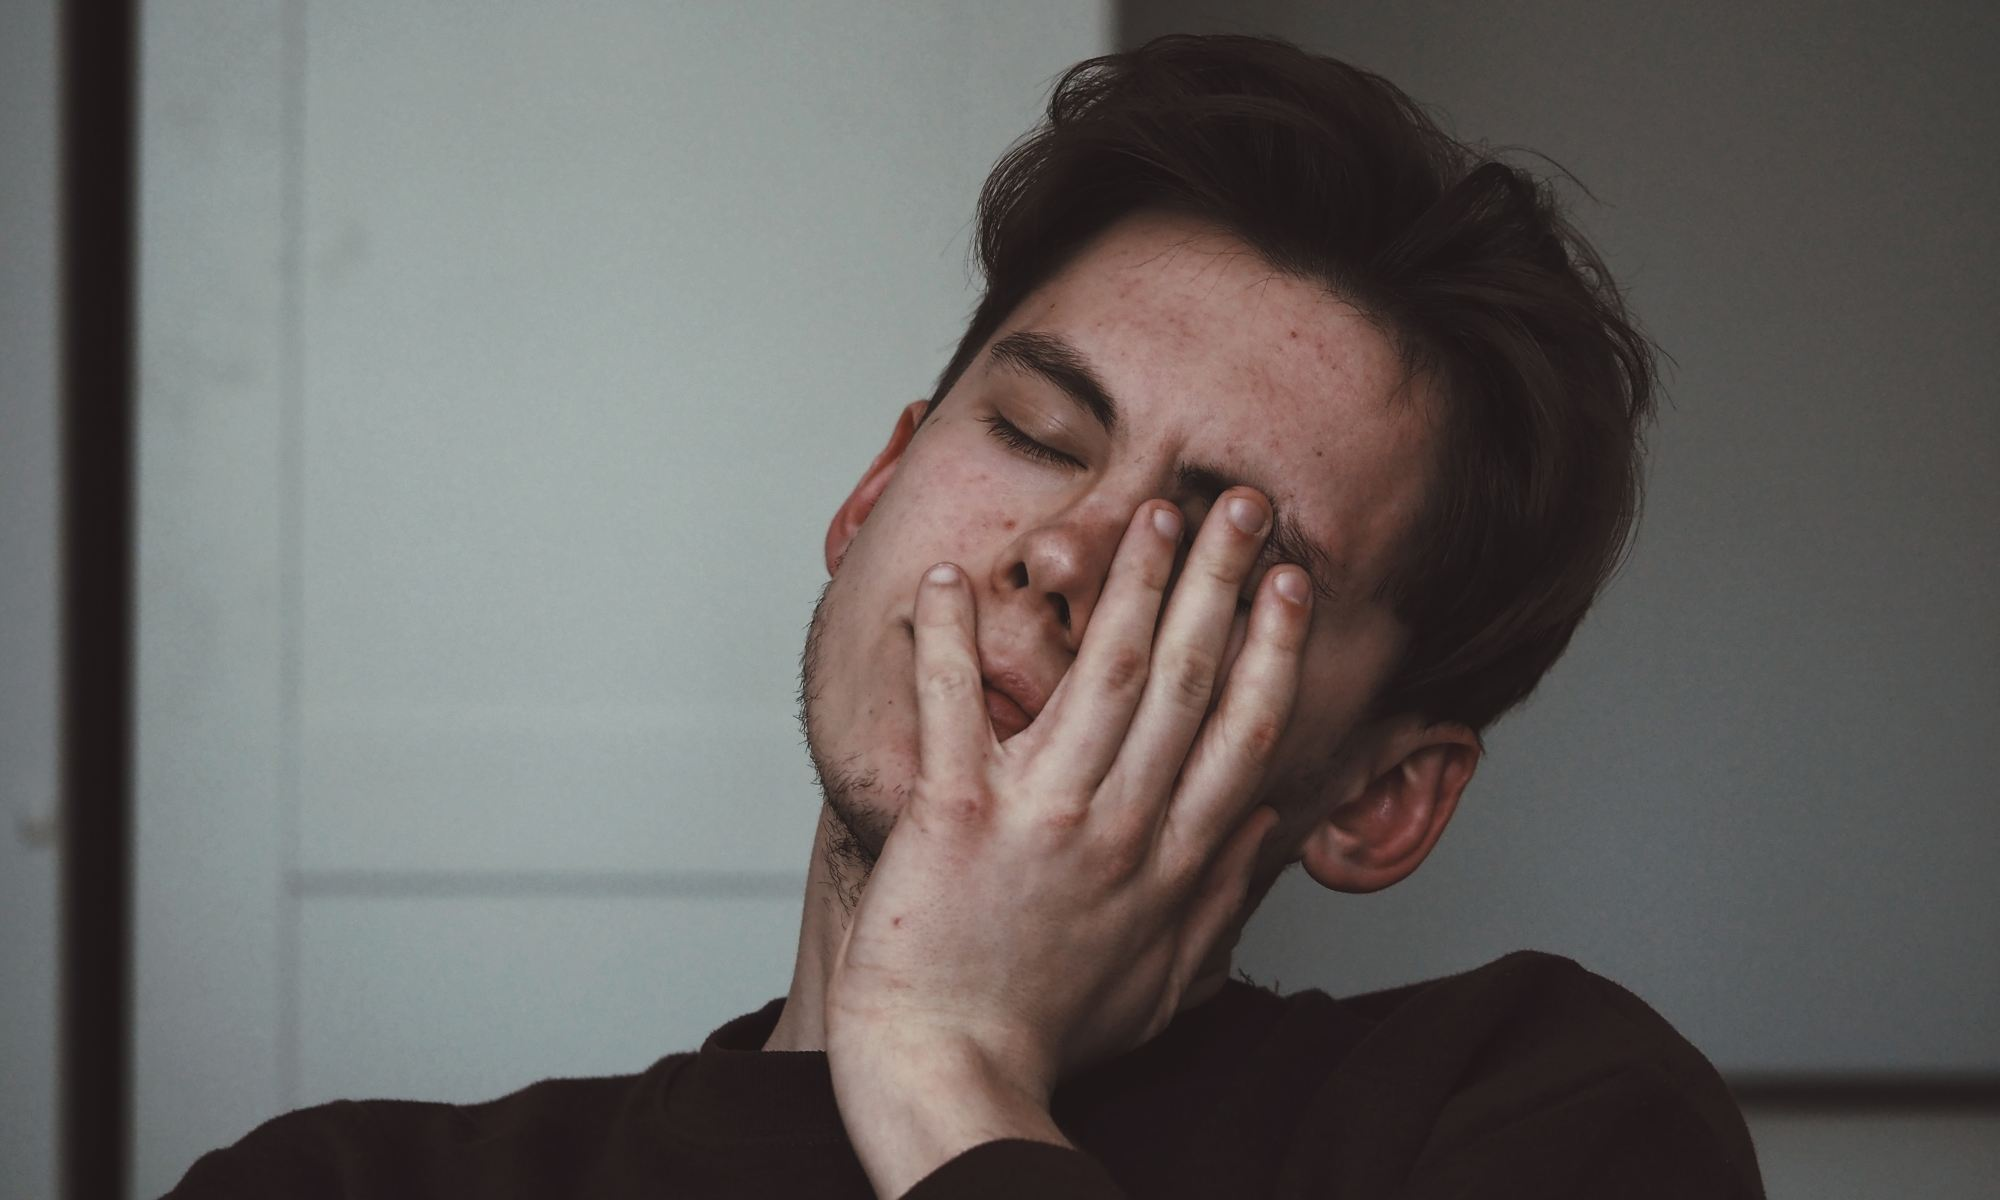 Man with hand on his face suffering from lack of sleep